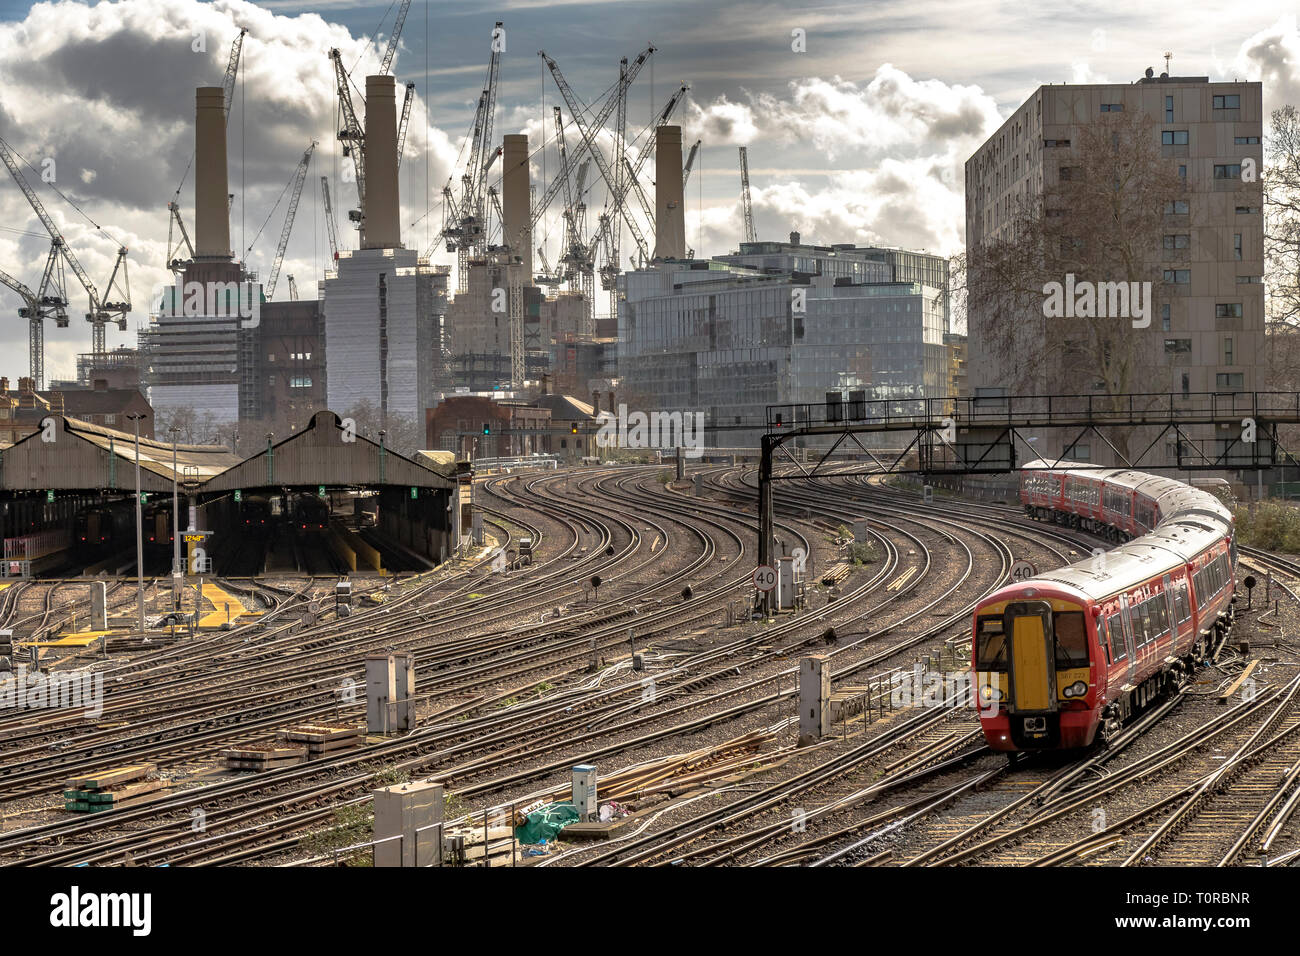 The Gatwick Express approaching Ebury Bridge on the final approach to Victorian Station ,with Battersea Power Station in the distance ,London SW1 - Stock Image